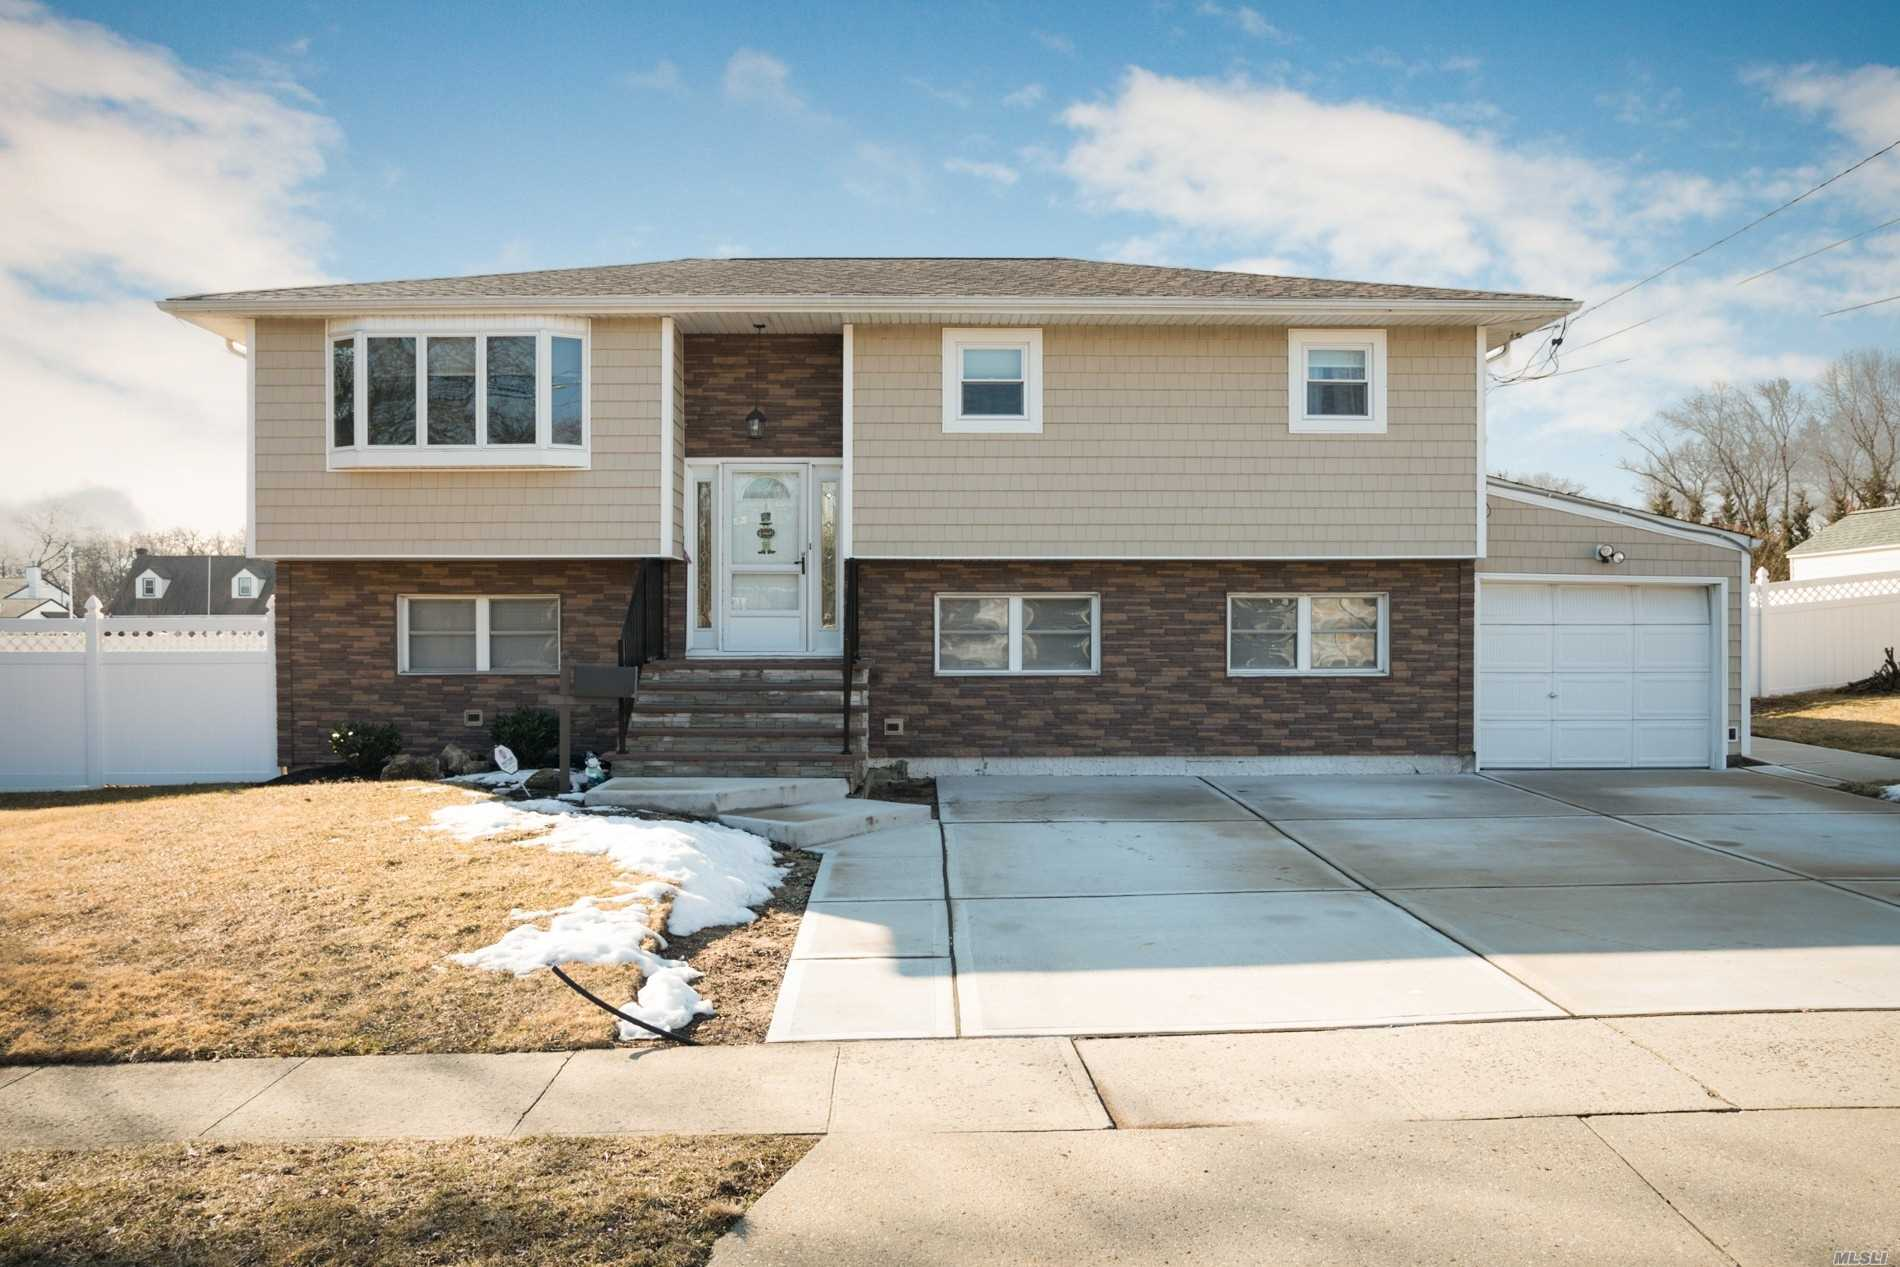 Diamond Hi Ranch * Updated w/4 Seasons Sun room, Covered Patio Under Sun room, Deck, In ground Pool (16x36 + 10x10) w/Heater Hookup, New Driveway, New Porch, Shed w/Electric, Dead End Block, * Low Taxes, Possible M/D with Proper Permits.Great wide block. 3 Block walk to Super Market and CVS. Near SS Pkwy and 135 (So. Oyster Bay Expressway), Minutes from the town of Farmingdale, with all it's shops and restaurants as well as the Train Station. Also minutes from the Massapequa Train Station.